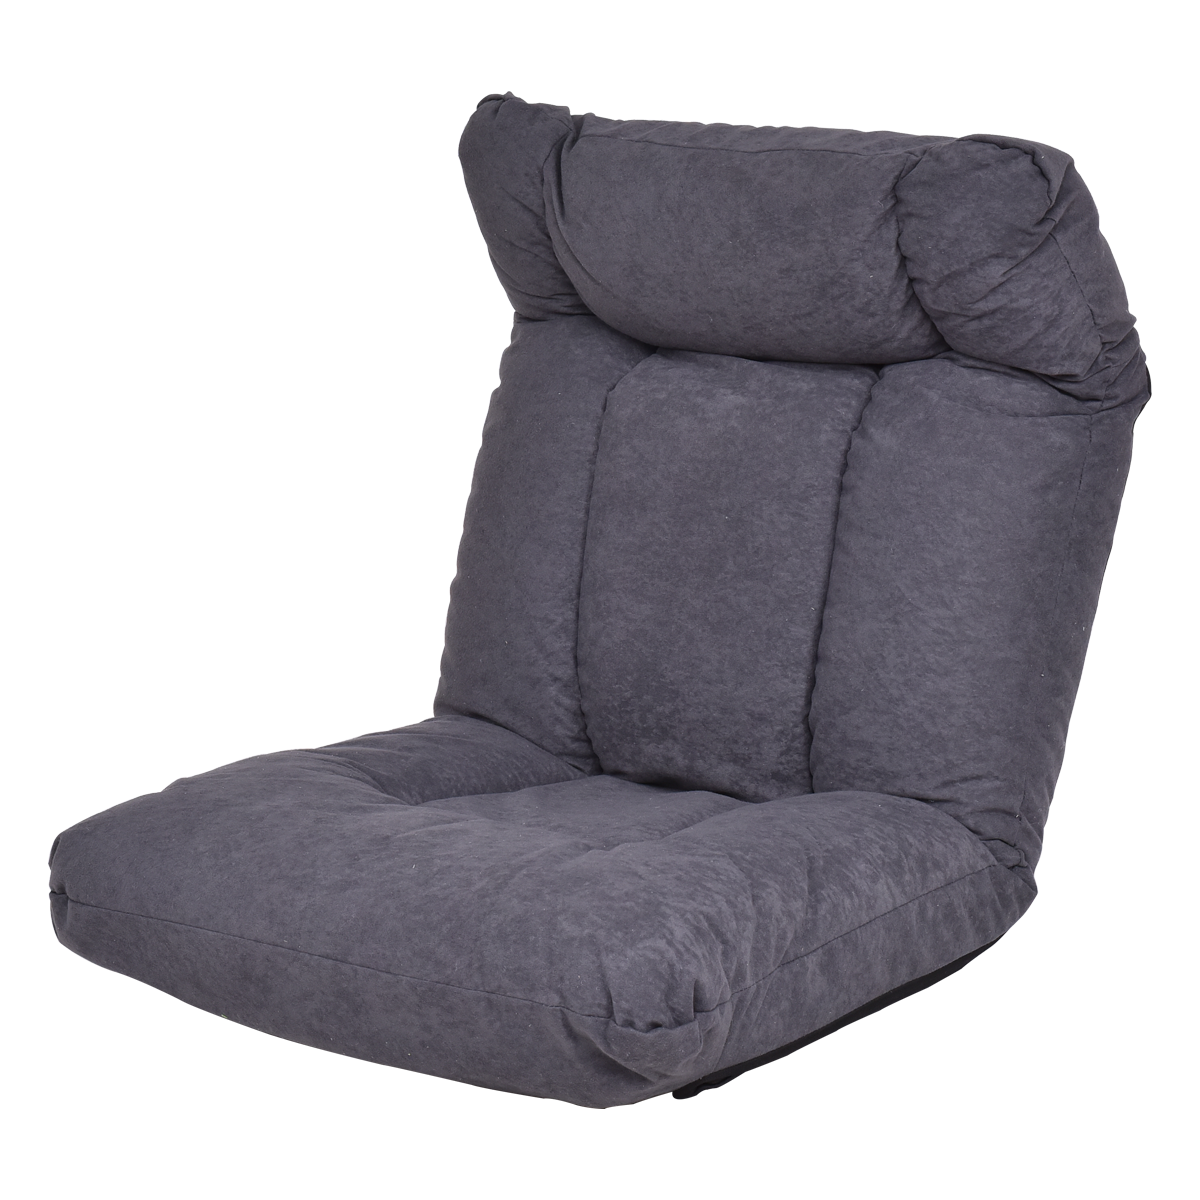 "GHP 20""x24""x32"" Sponge Cloth & Metal Frame Head Cushion Adjustable Backrest Floor Chair"